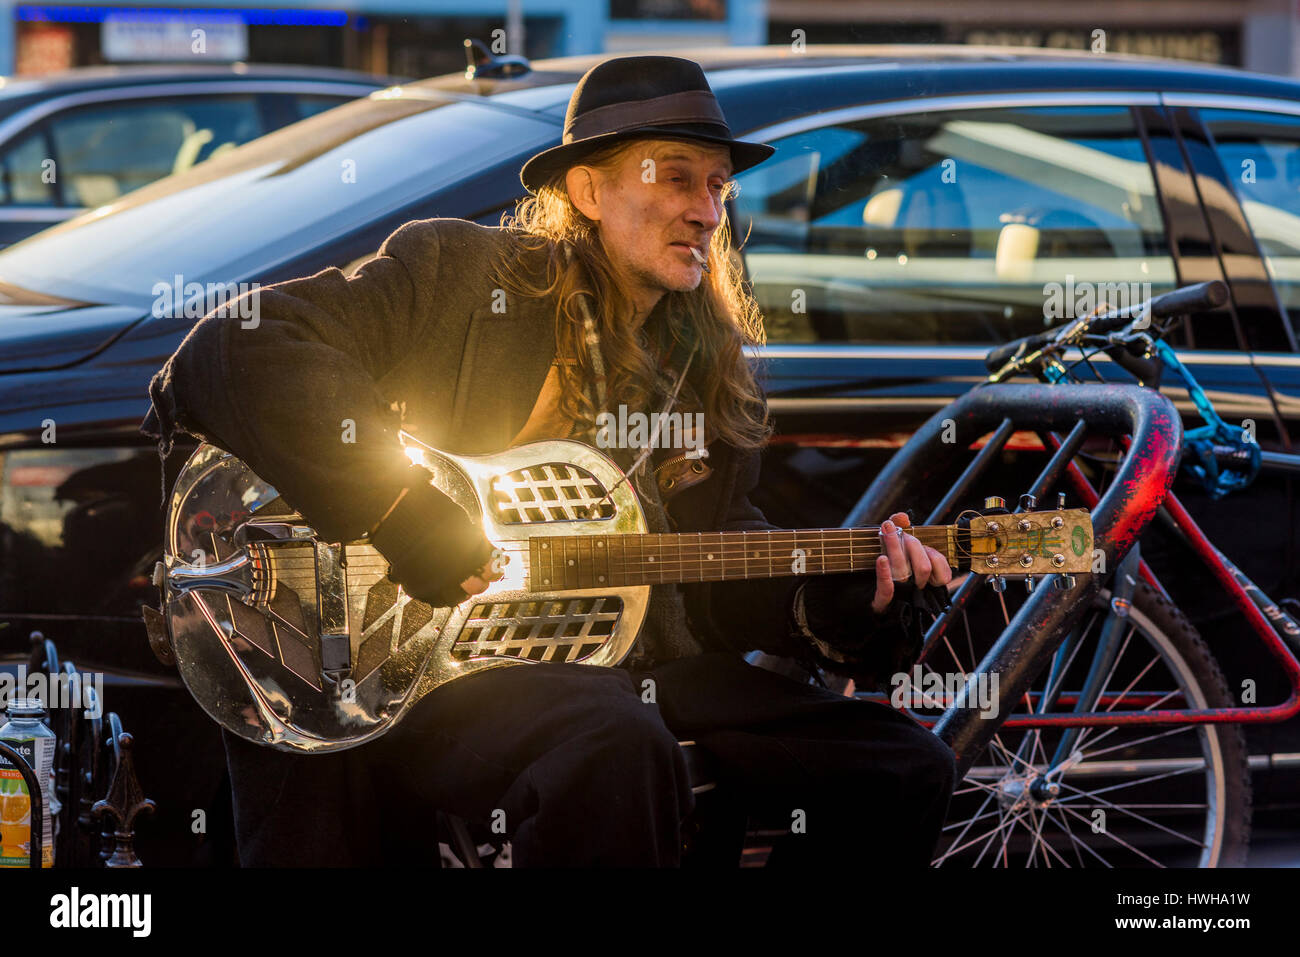 Busker playing slide guitar, Commercial Drive, Vancouver, British Columbia, Canada. - Stock Image